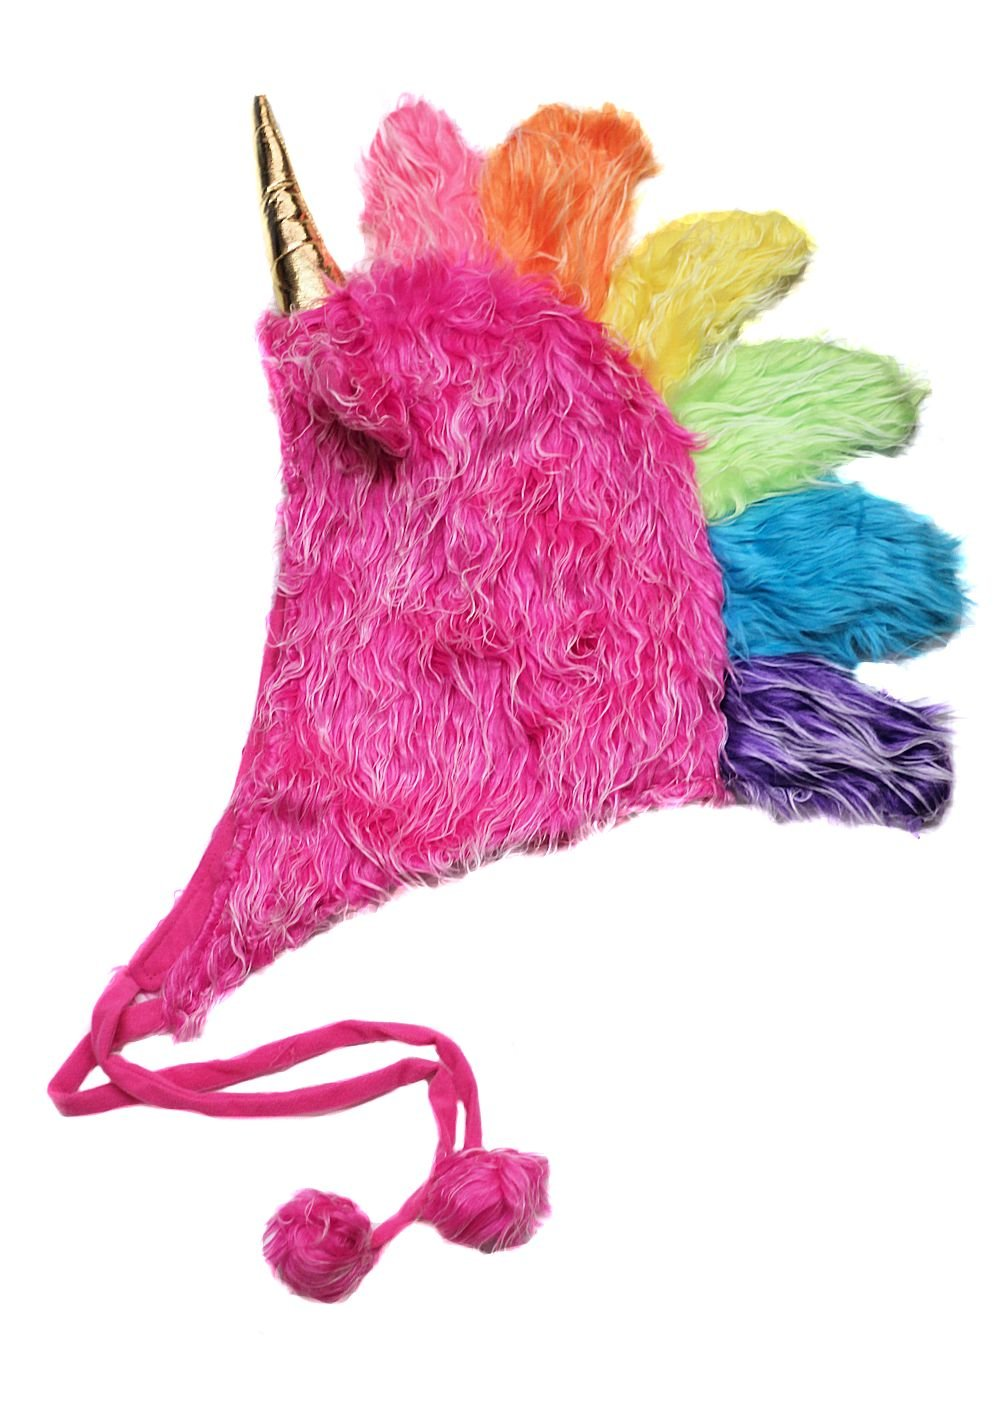 Storybook Wishes Plush Soft Fuzzy Unicorn Adult Hat (Choose Color)